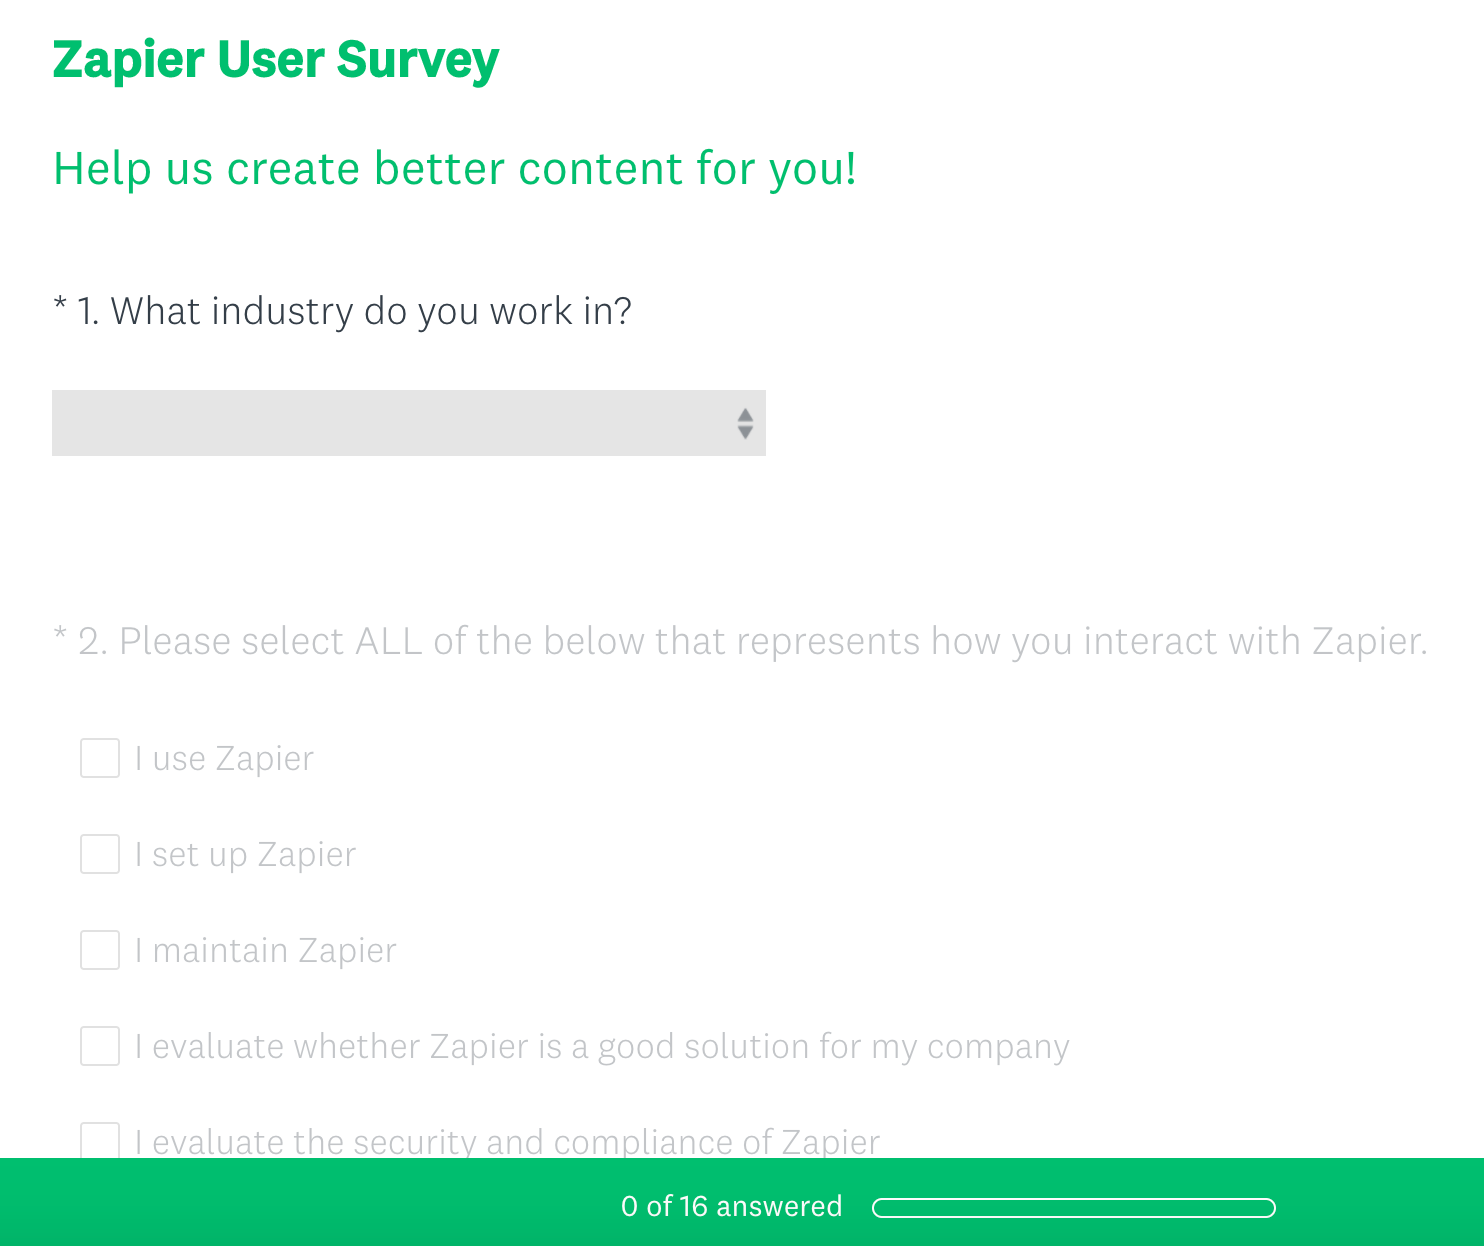 Product feedback example from Zapier